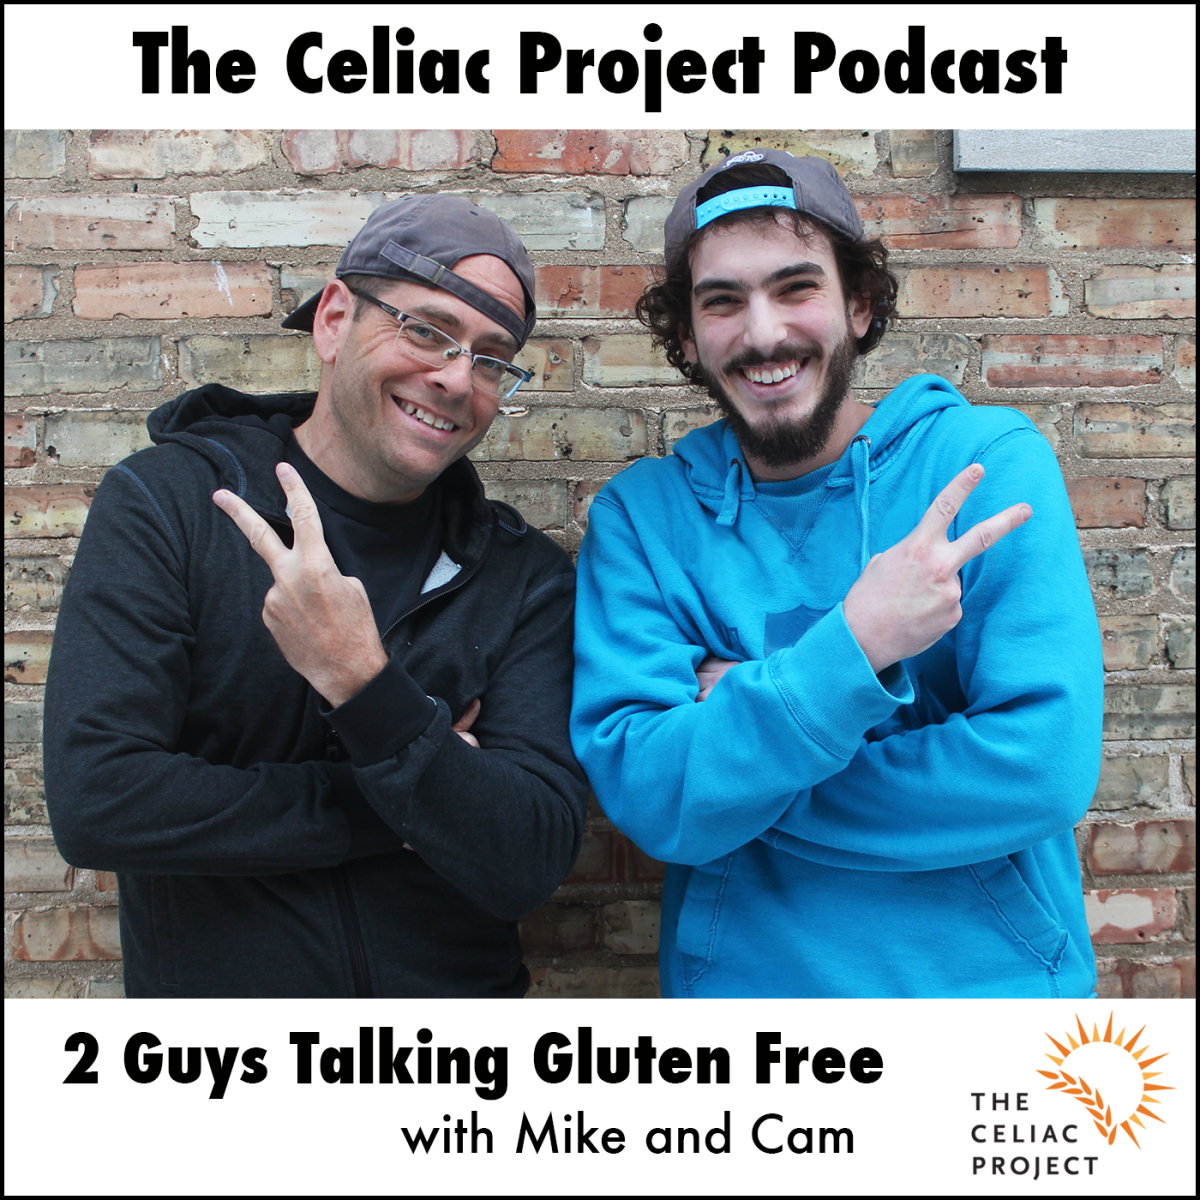 The Celiac Project Podcast: 2 Guys Talking Gluten Free